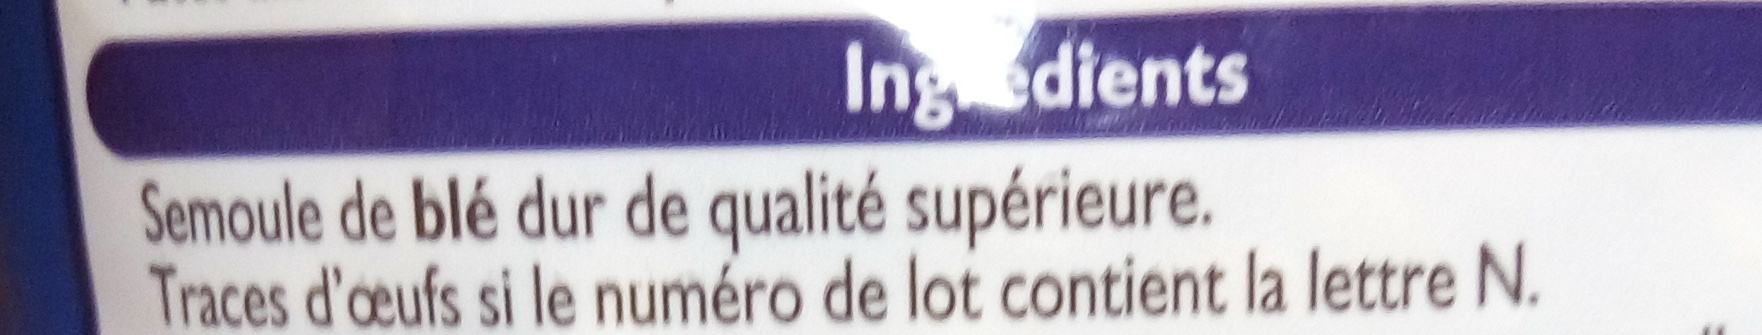 Torti cuisson rapide 3 mn - Ingredients - fr